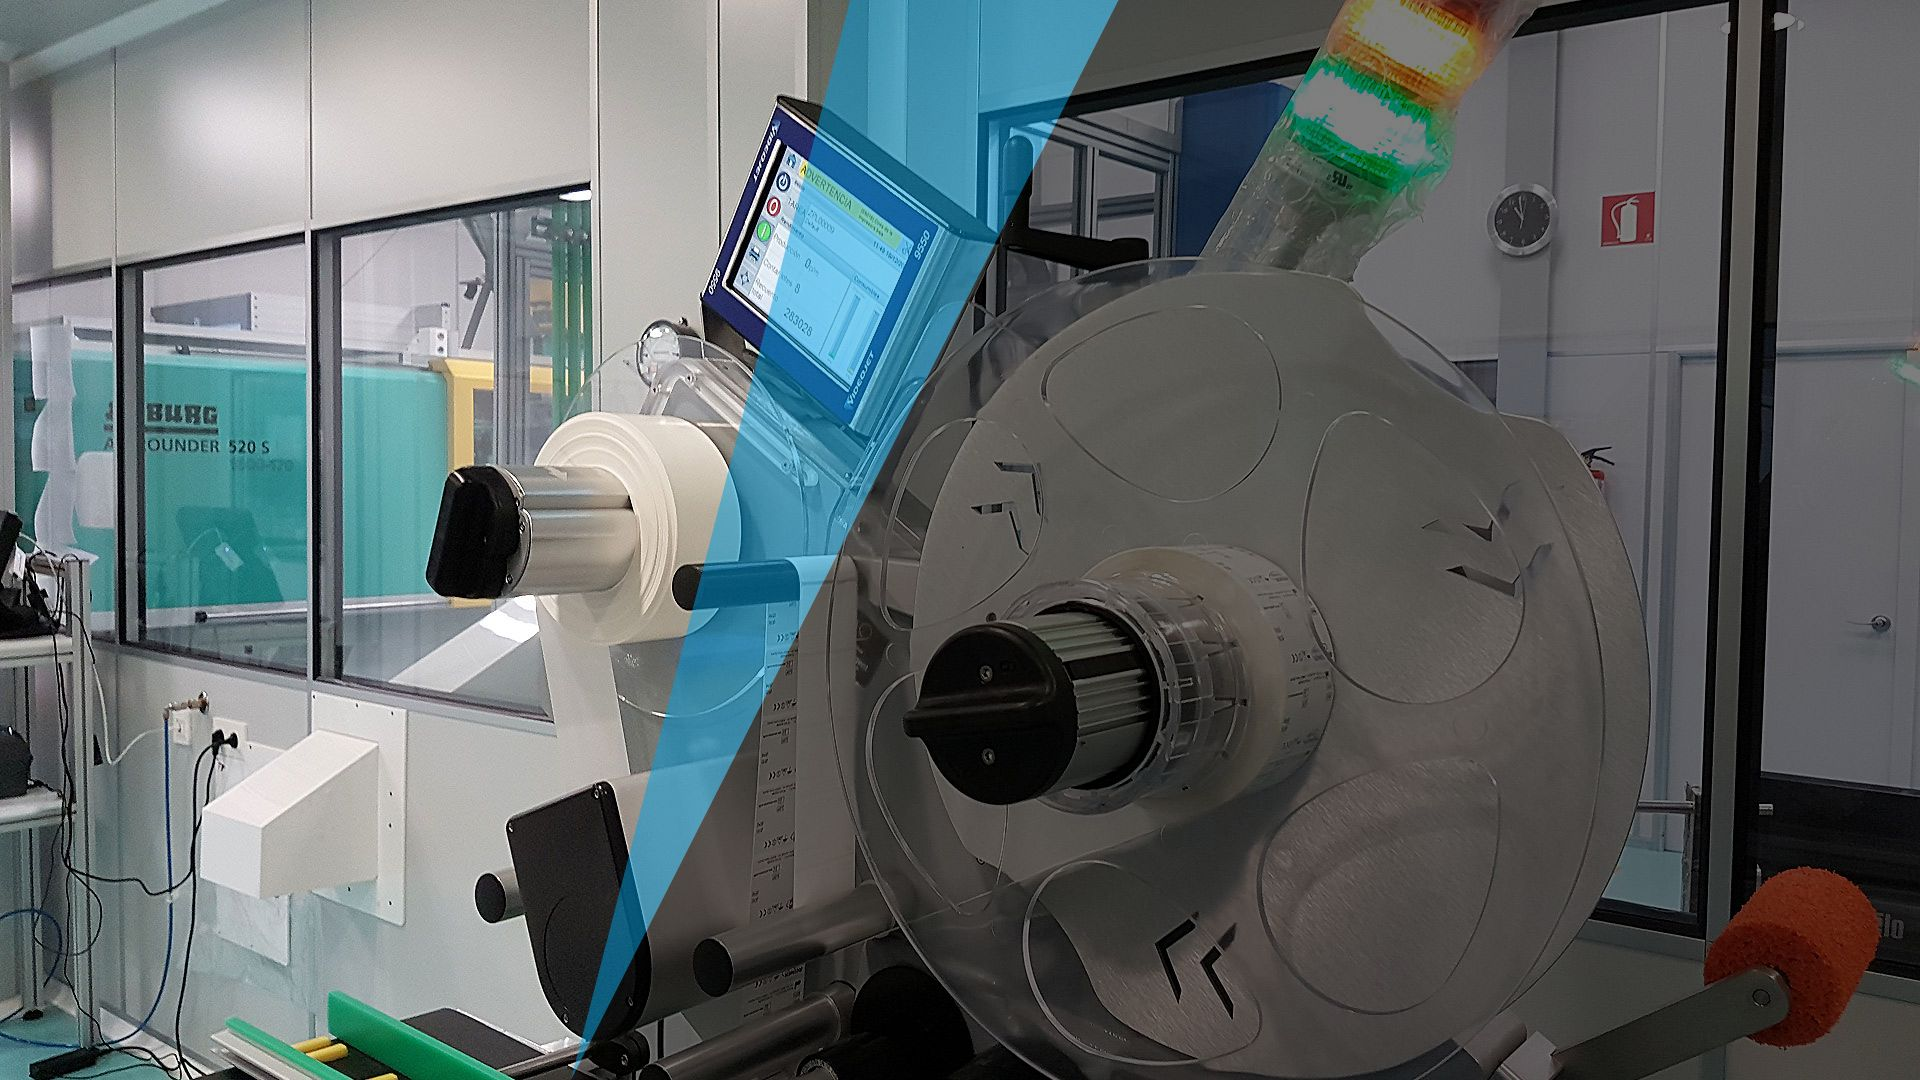 Reiner Medical - Diverse finishing operations and subassemblies equipment (assembling, packaging and blistering)